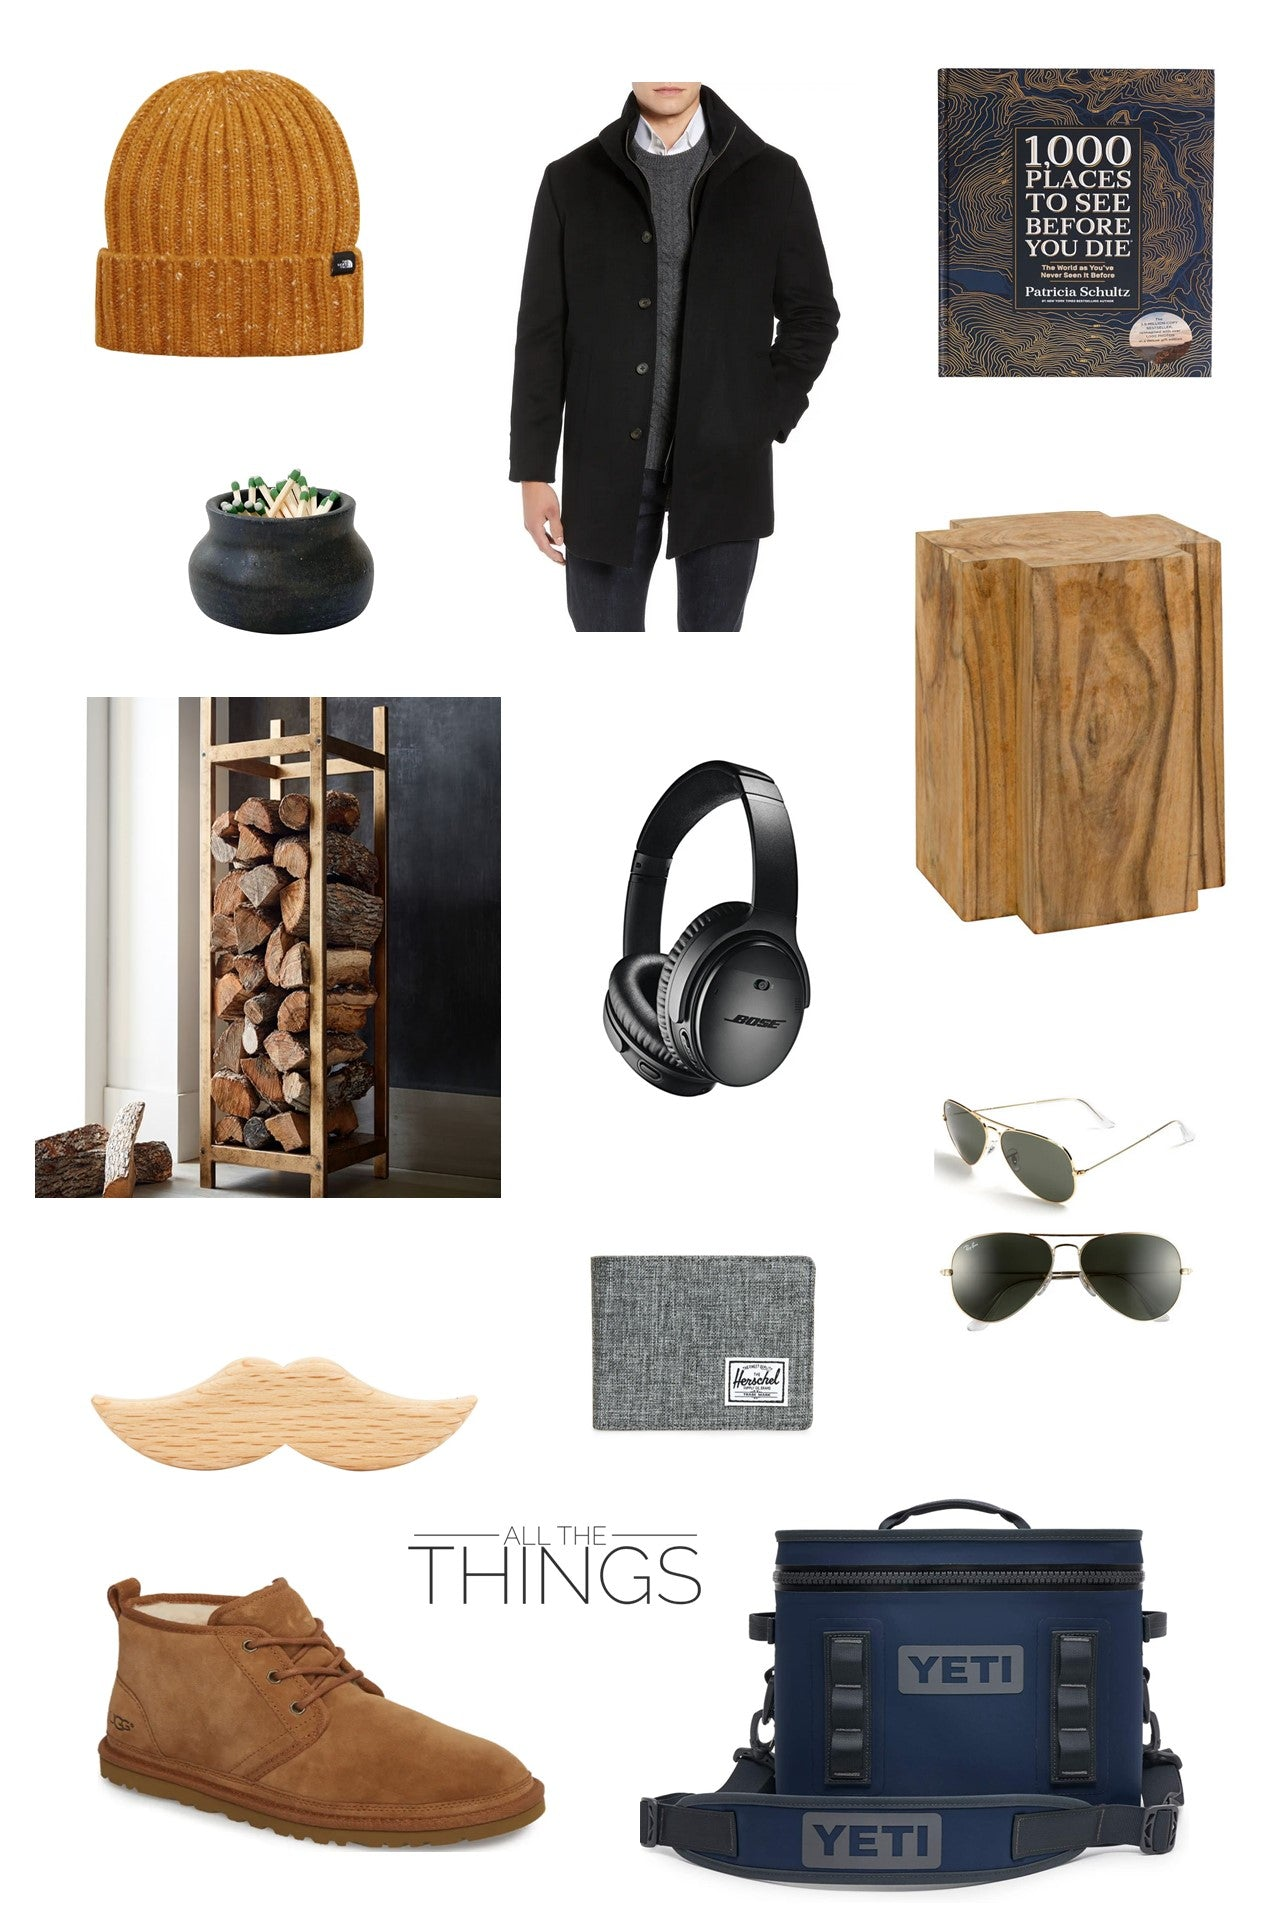 mens gift guide all the things greige design shop holiday 2020